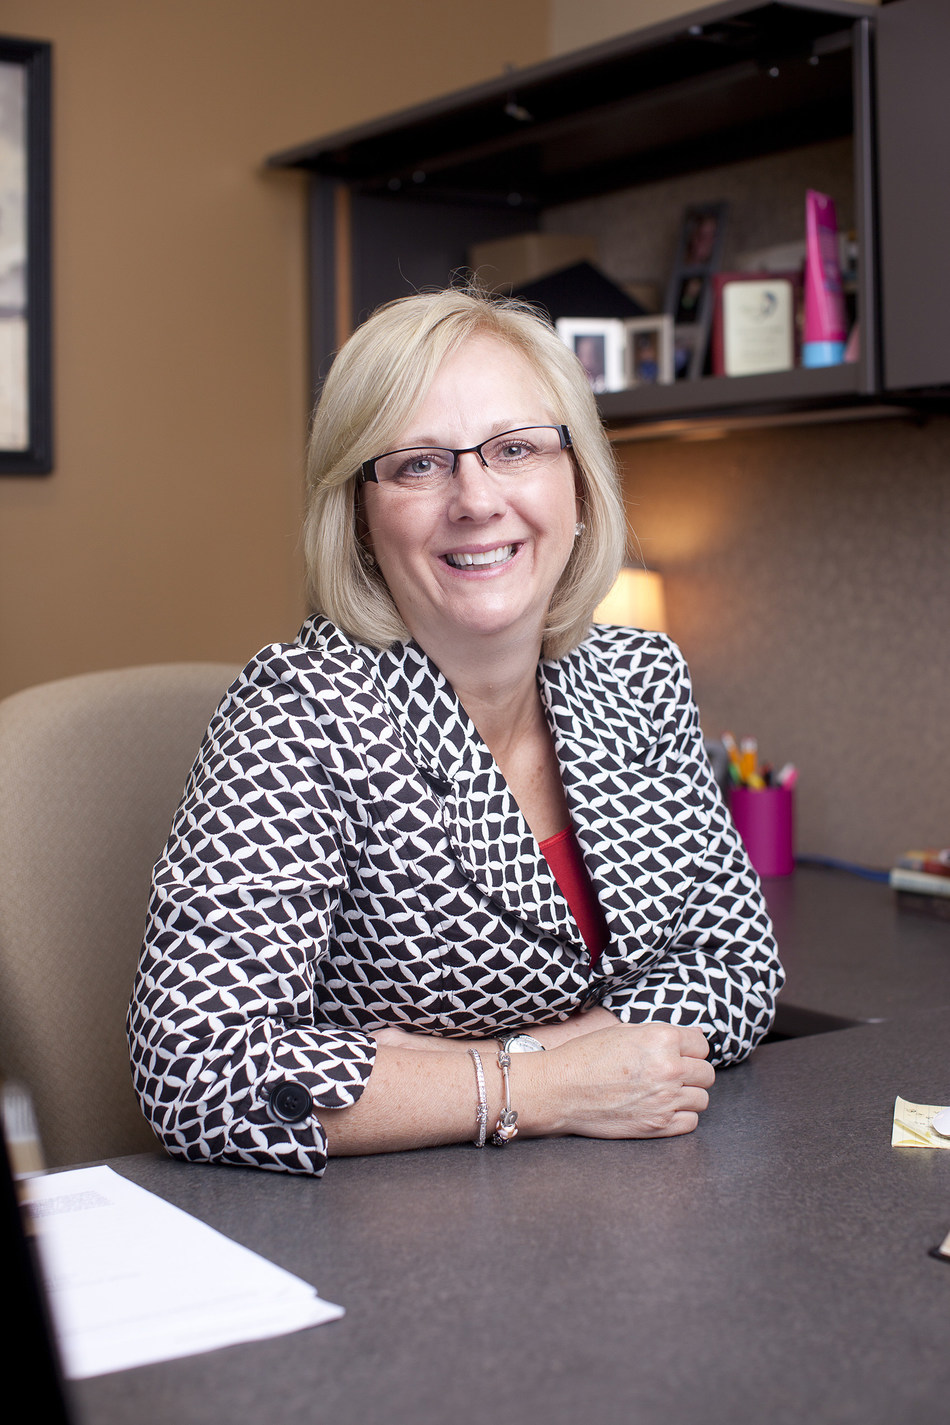 New Wesley Seminary President, Dr. Colleen Derr